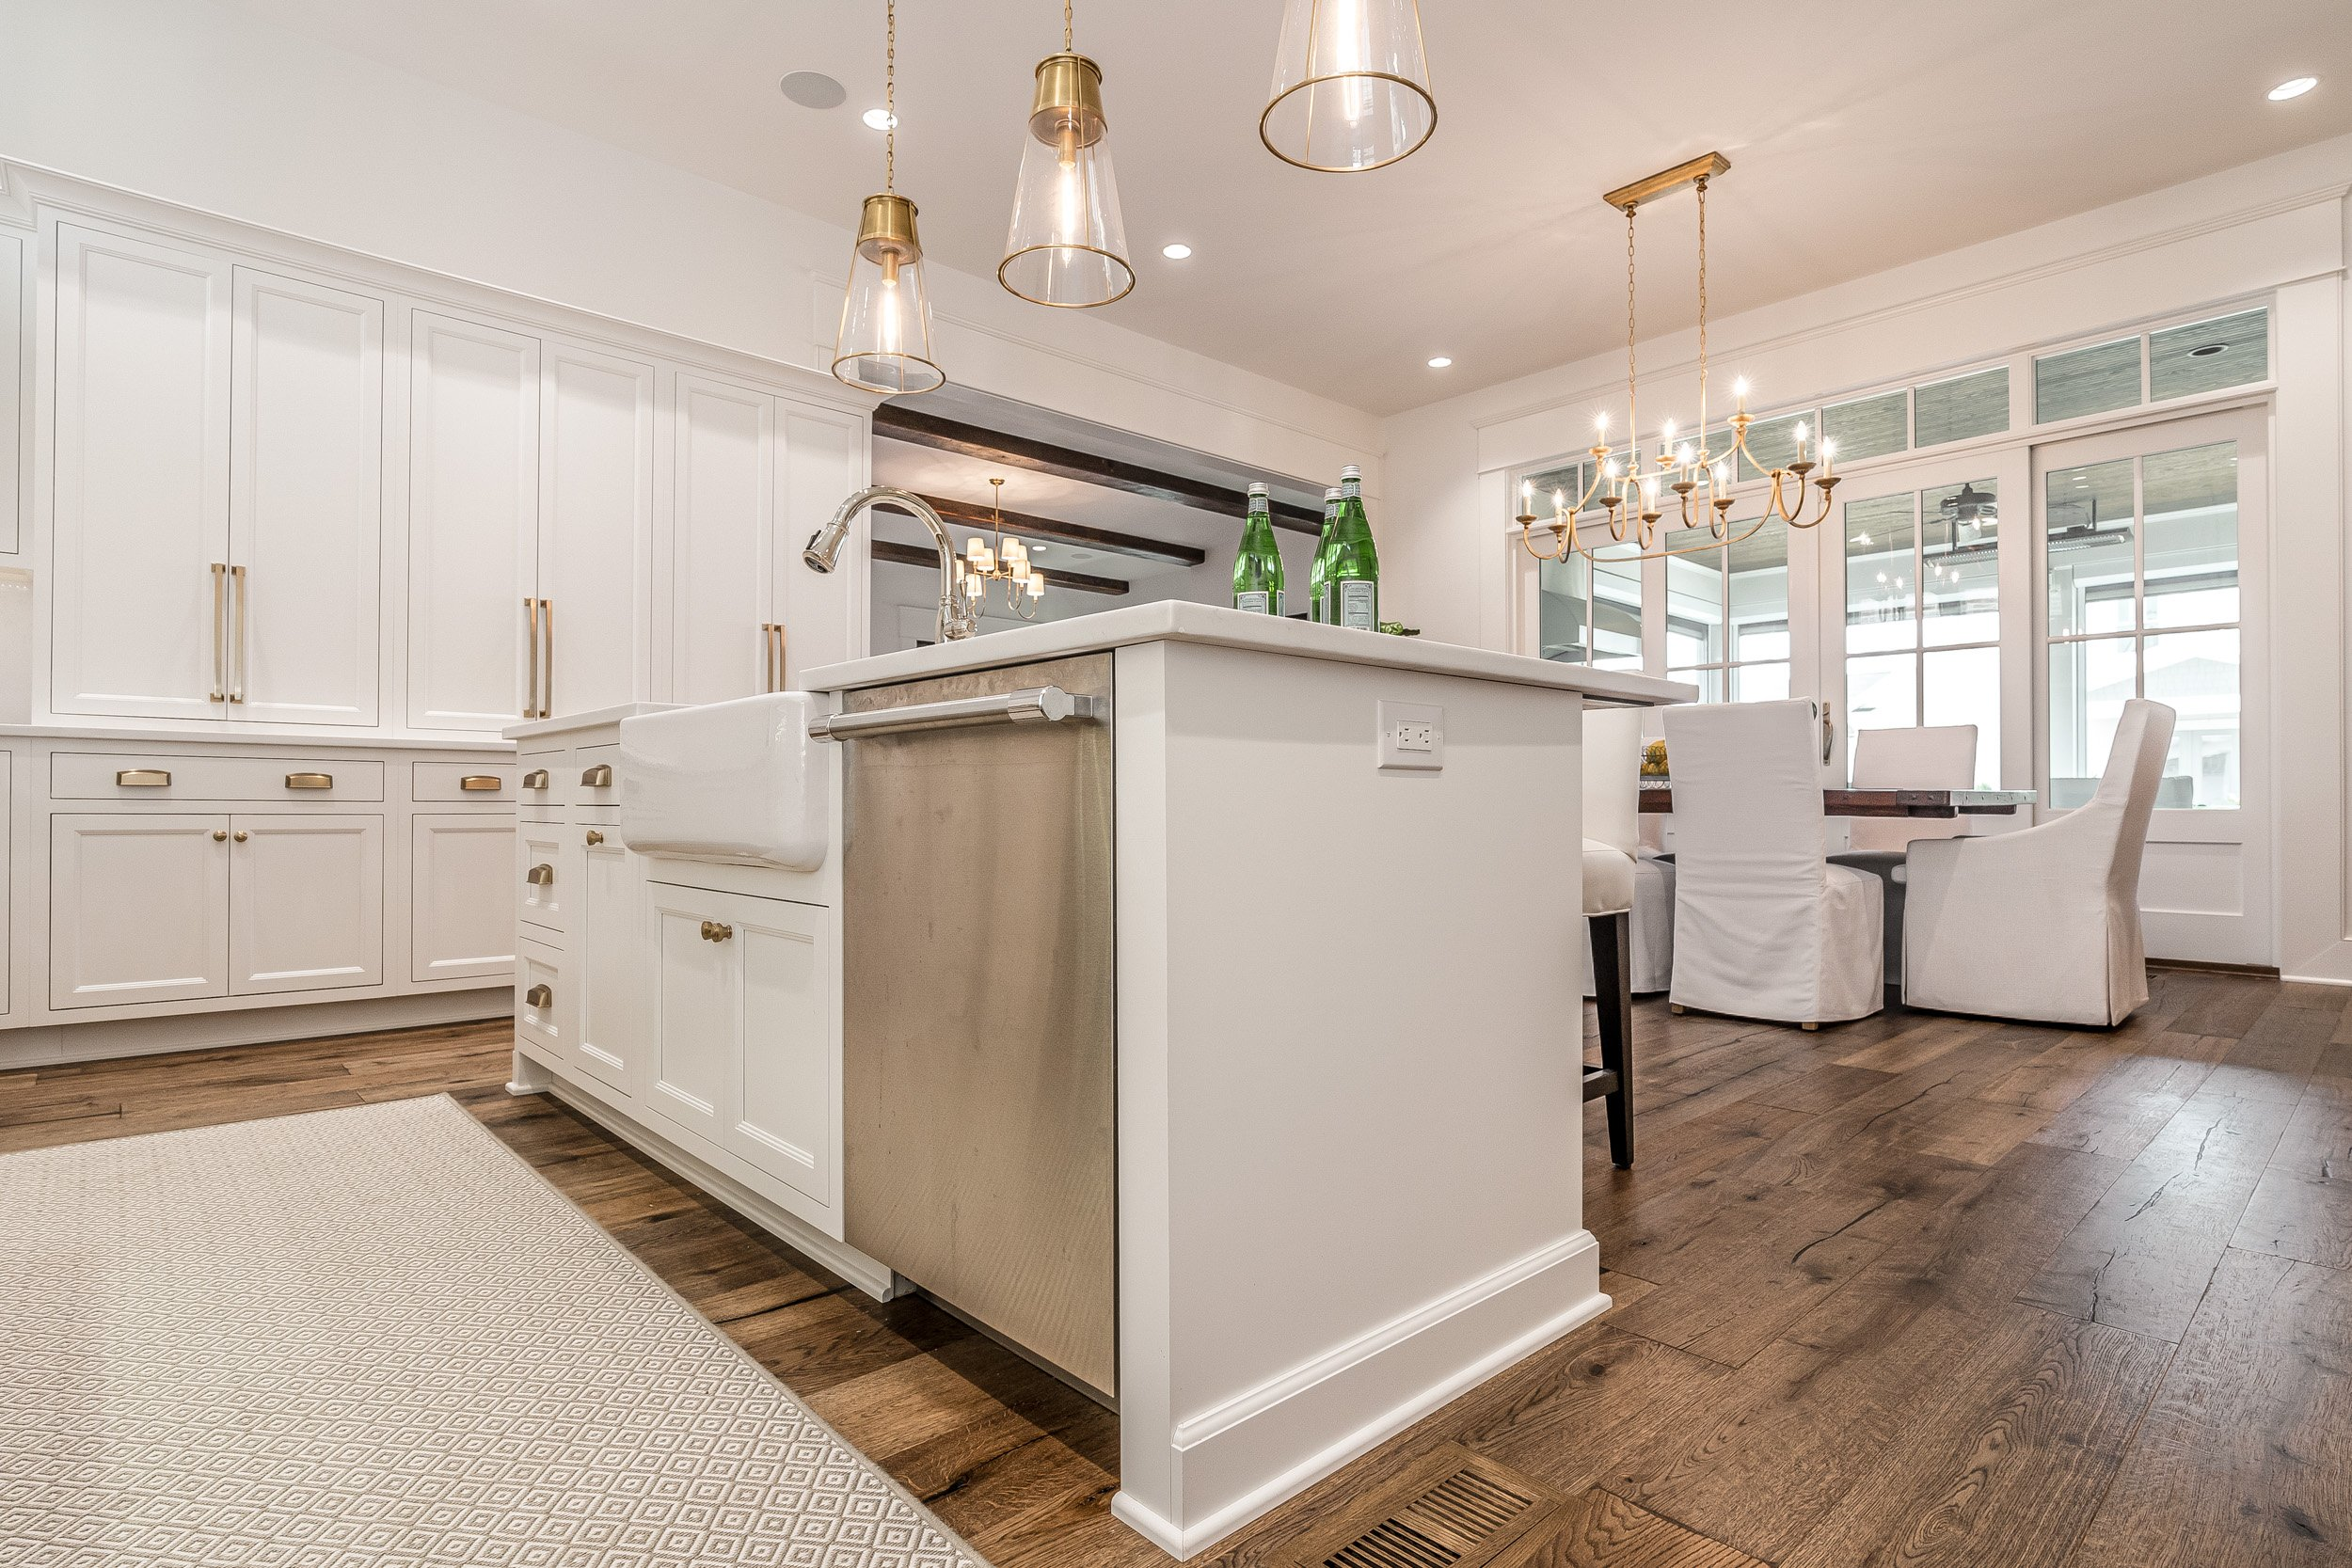 Nashville & Louisville Cabinetry Design & Remodel & Appliances